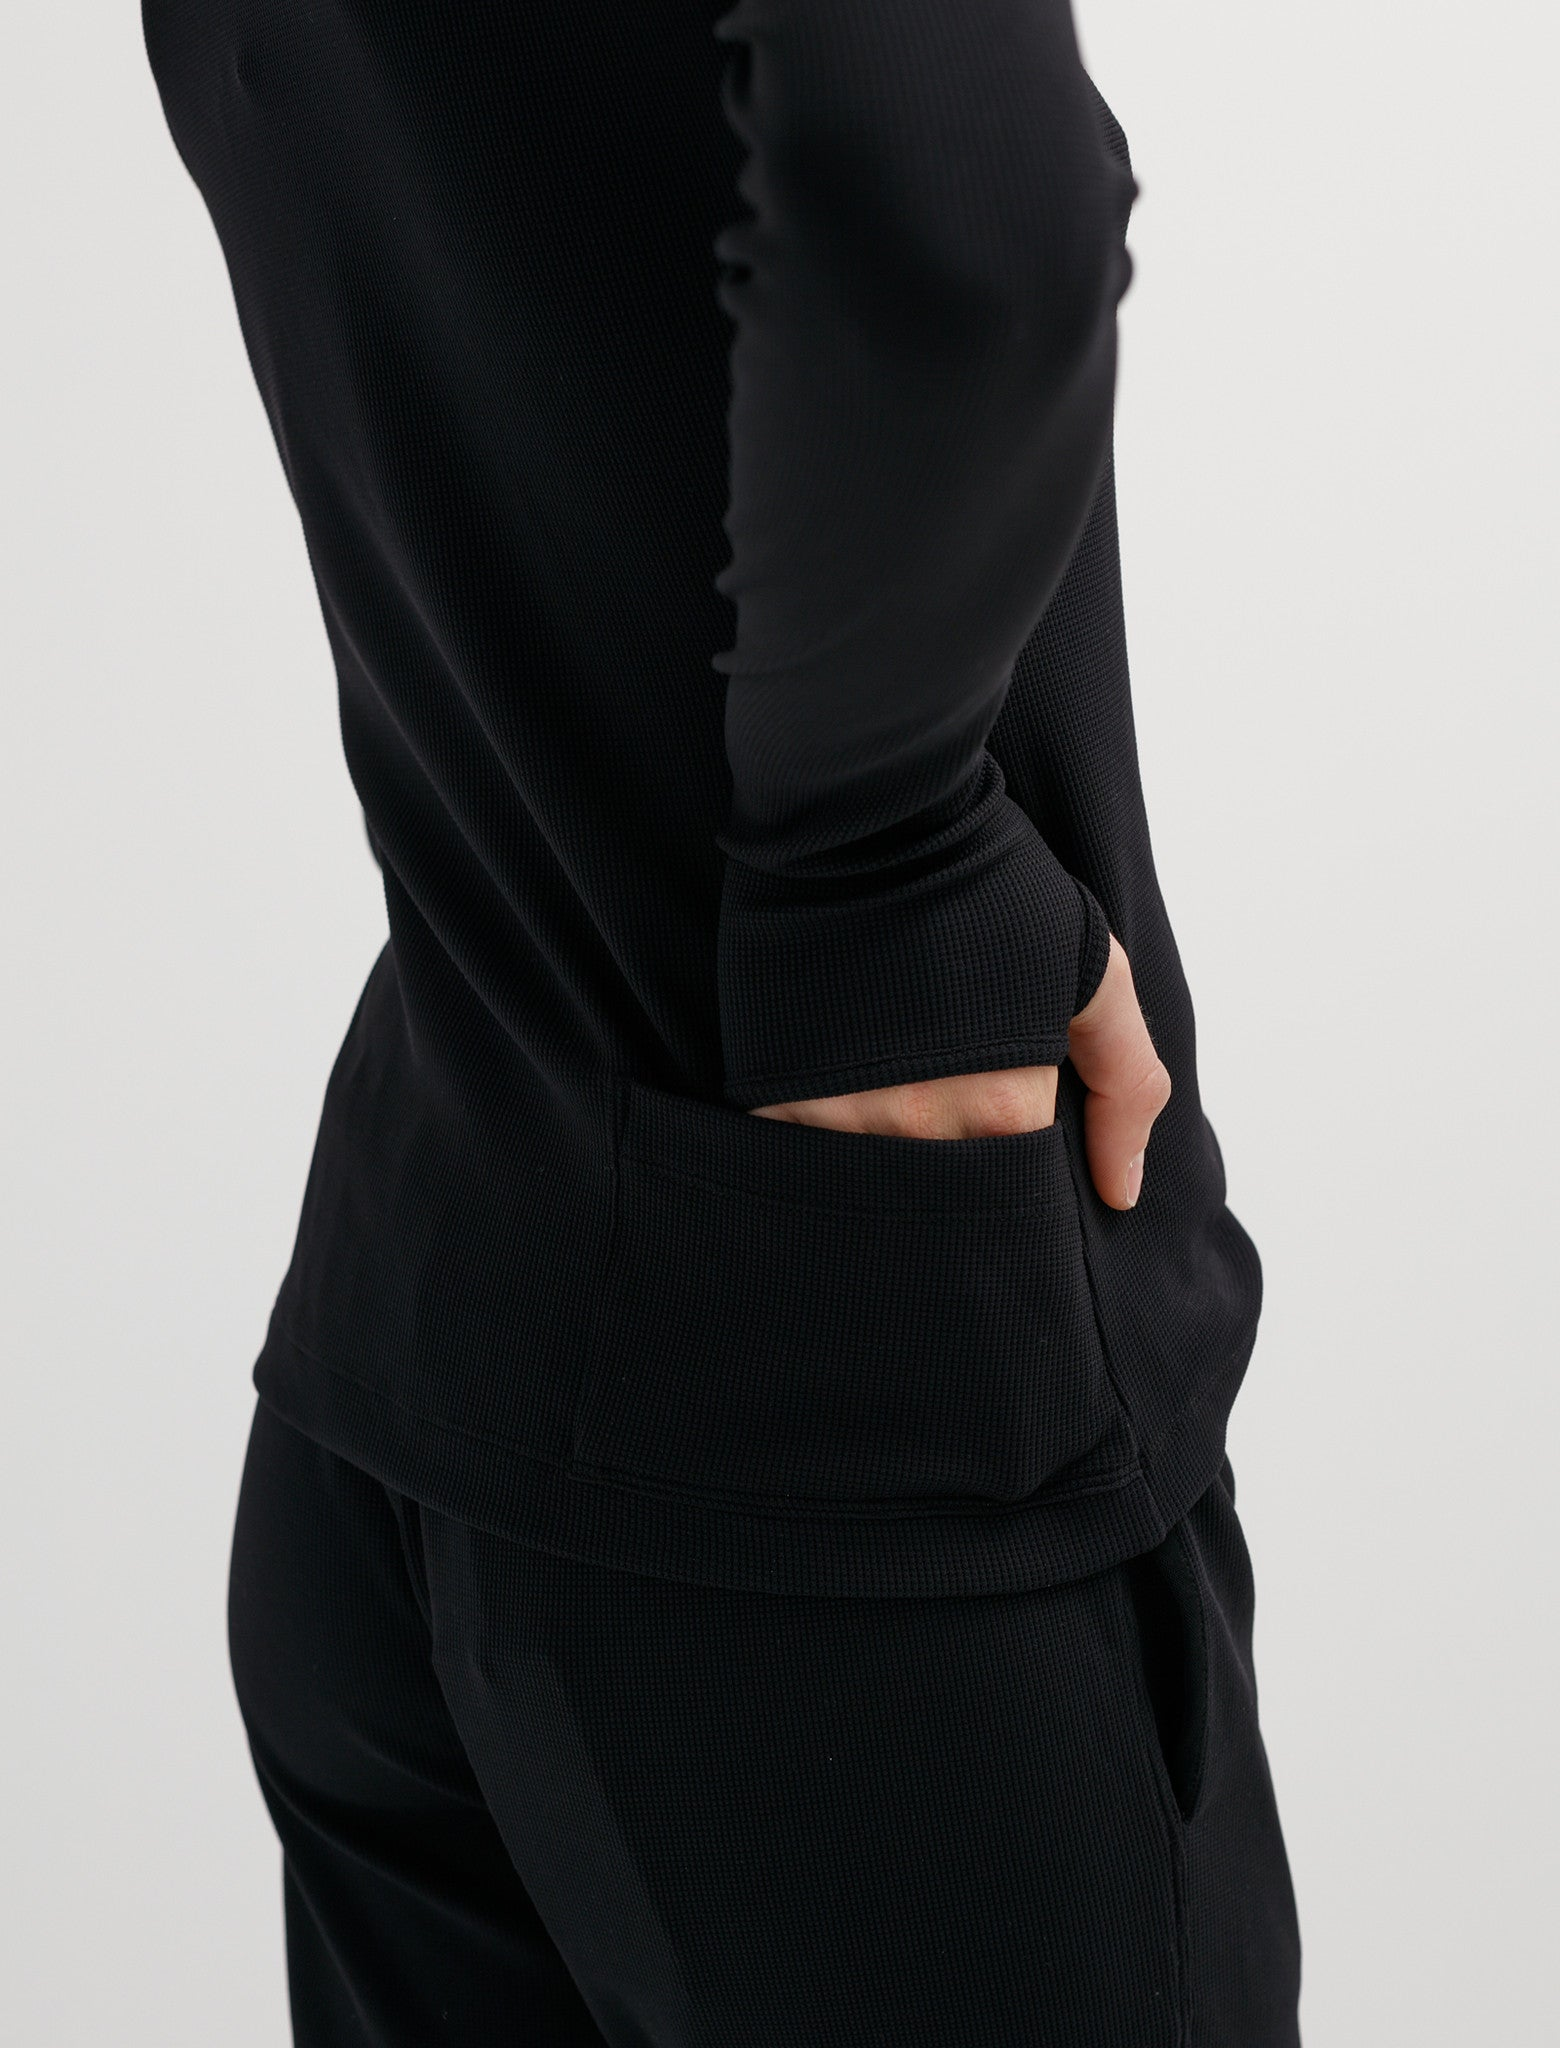 Haku Top Black